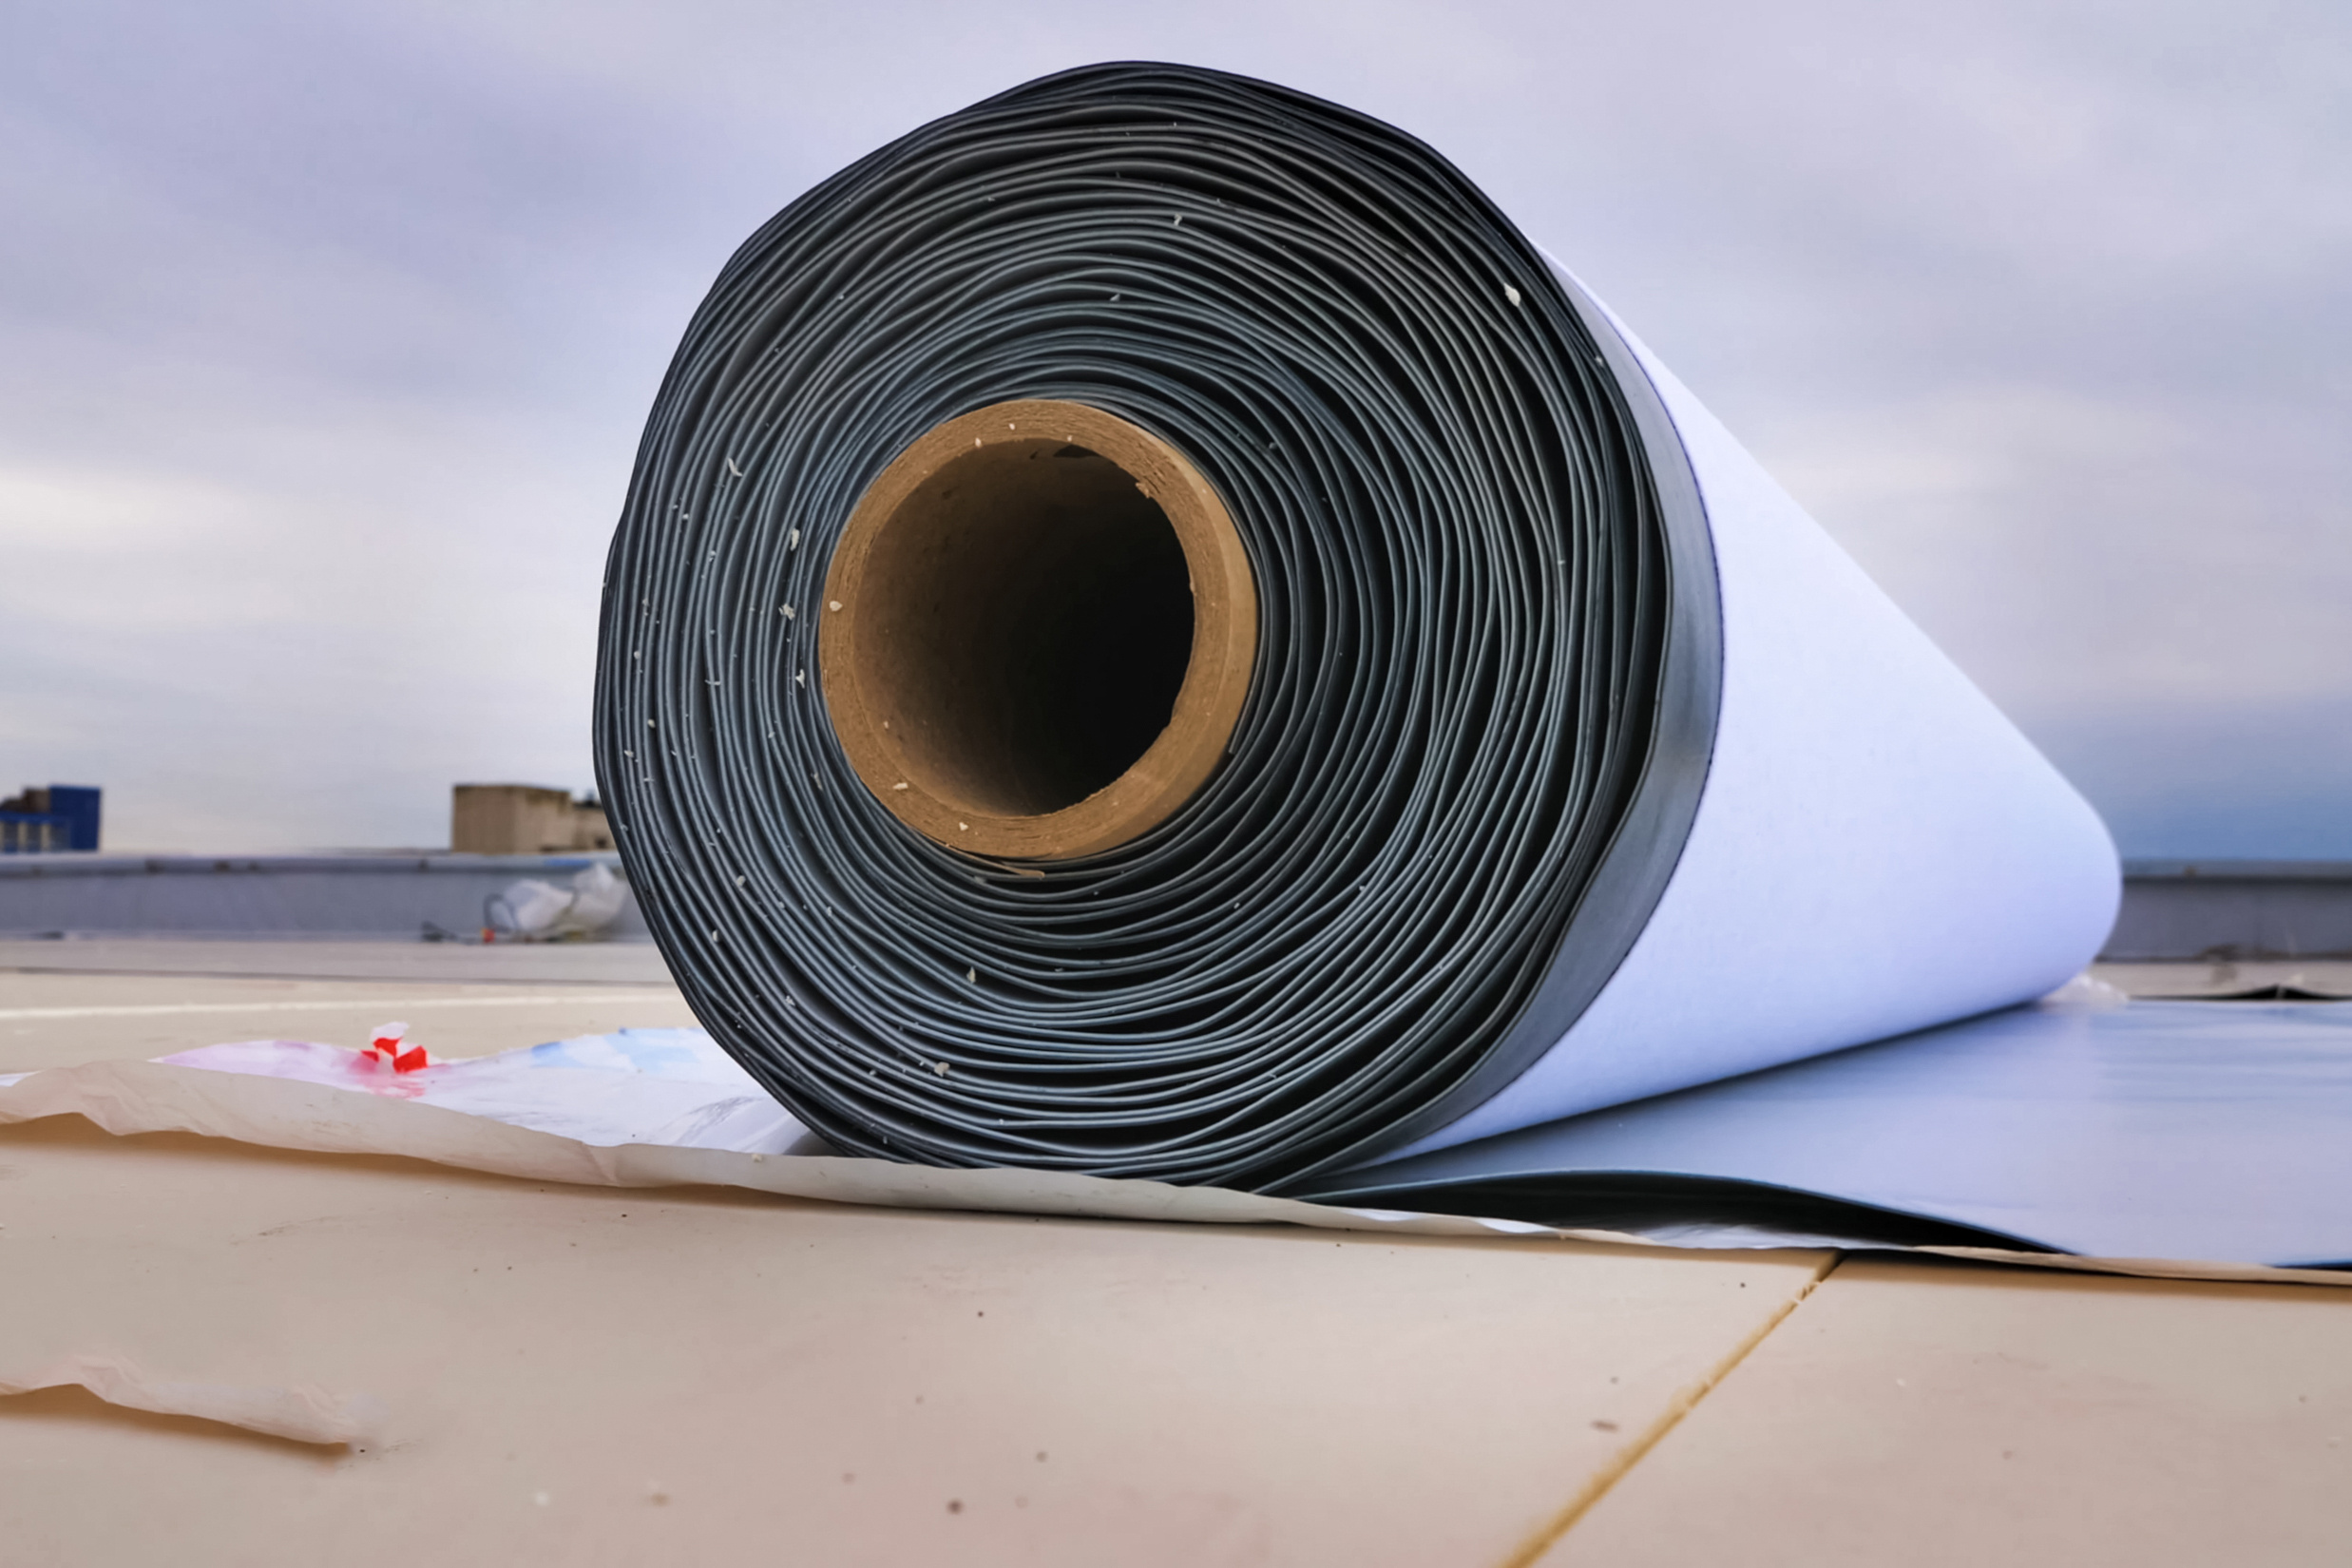 White, rubberized material is rolled up and resting on a flat roof ready to be installed.